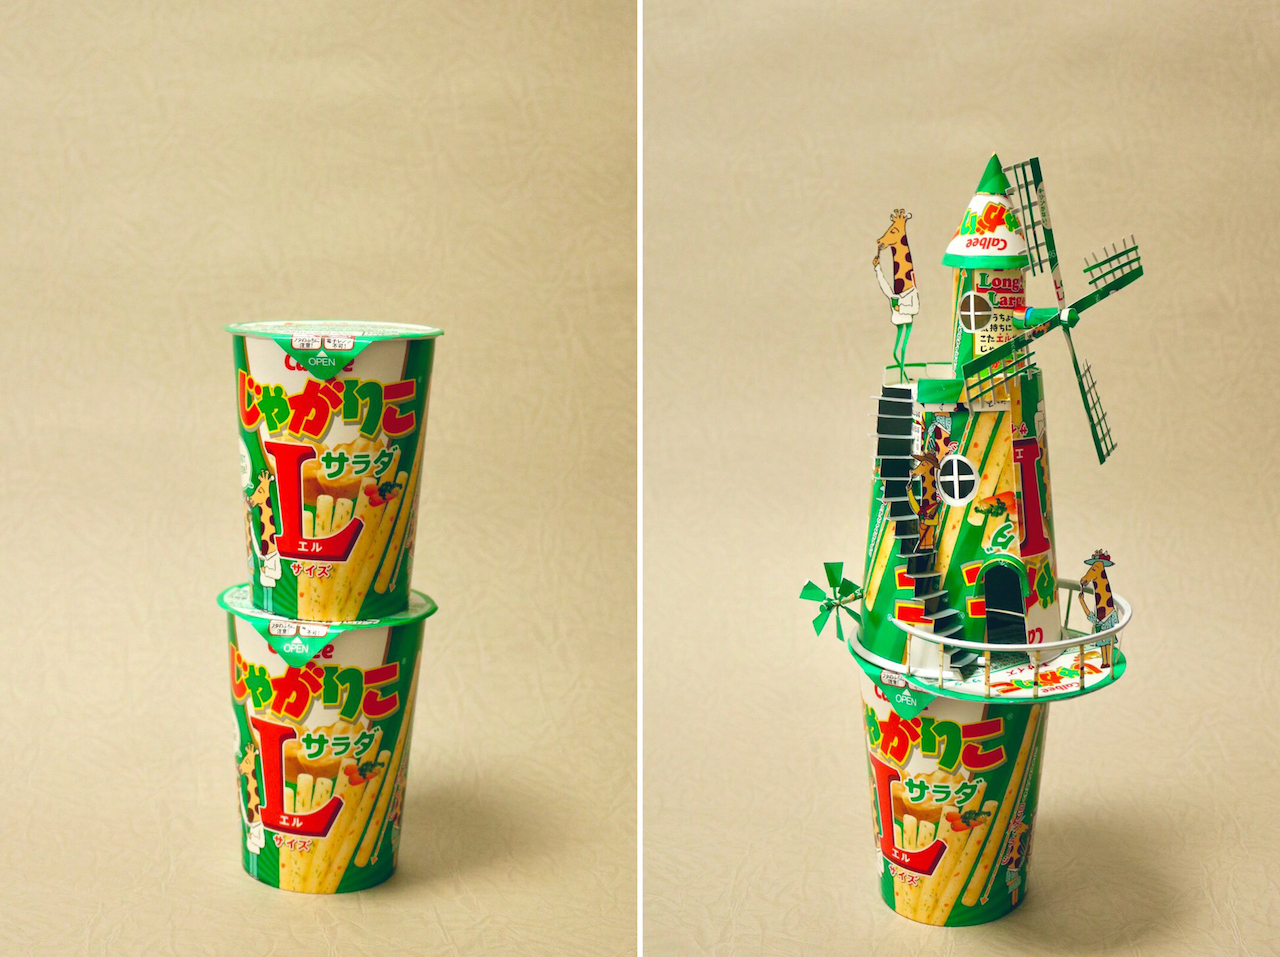 Product Packaging Turned Into Art - 26